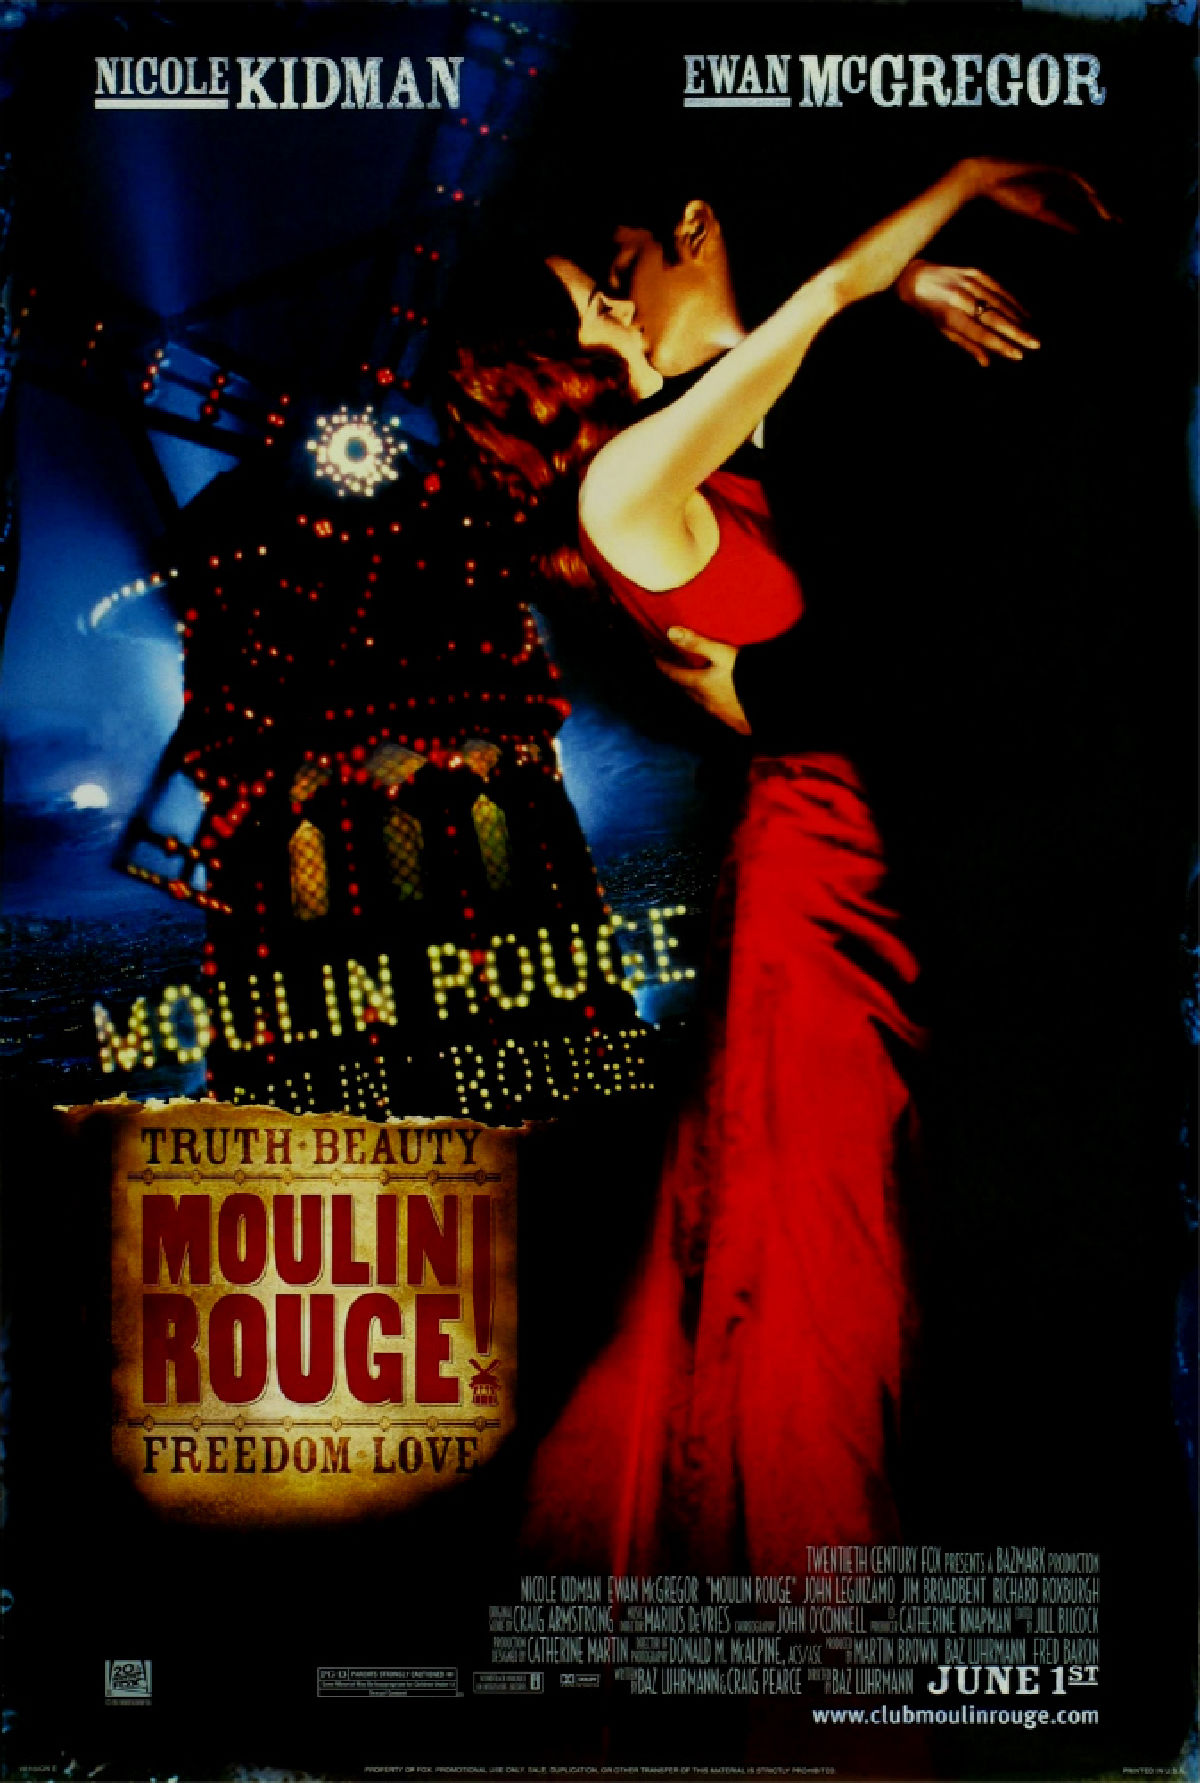 'Moulin Rouge (Sing-A-Long)' movie poster